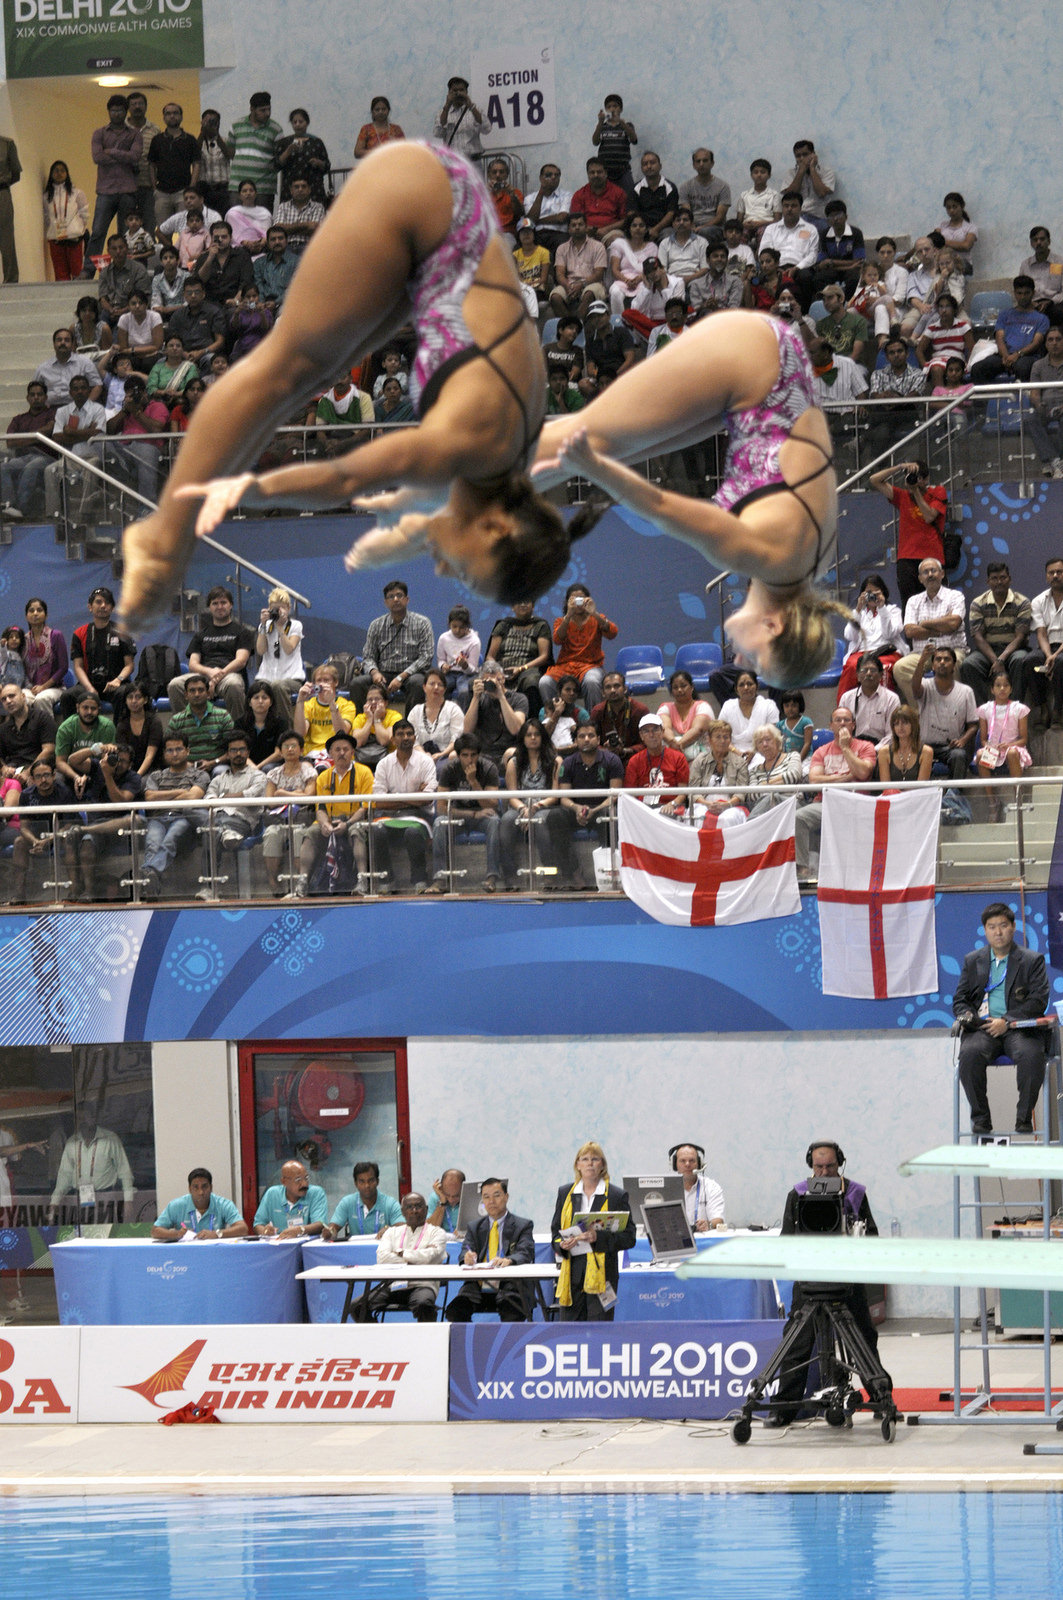 Olympic Games - presentation skills - your personal best - diving 1